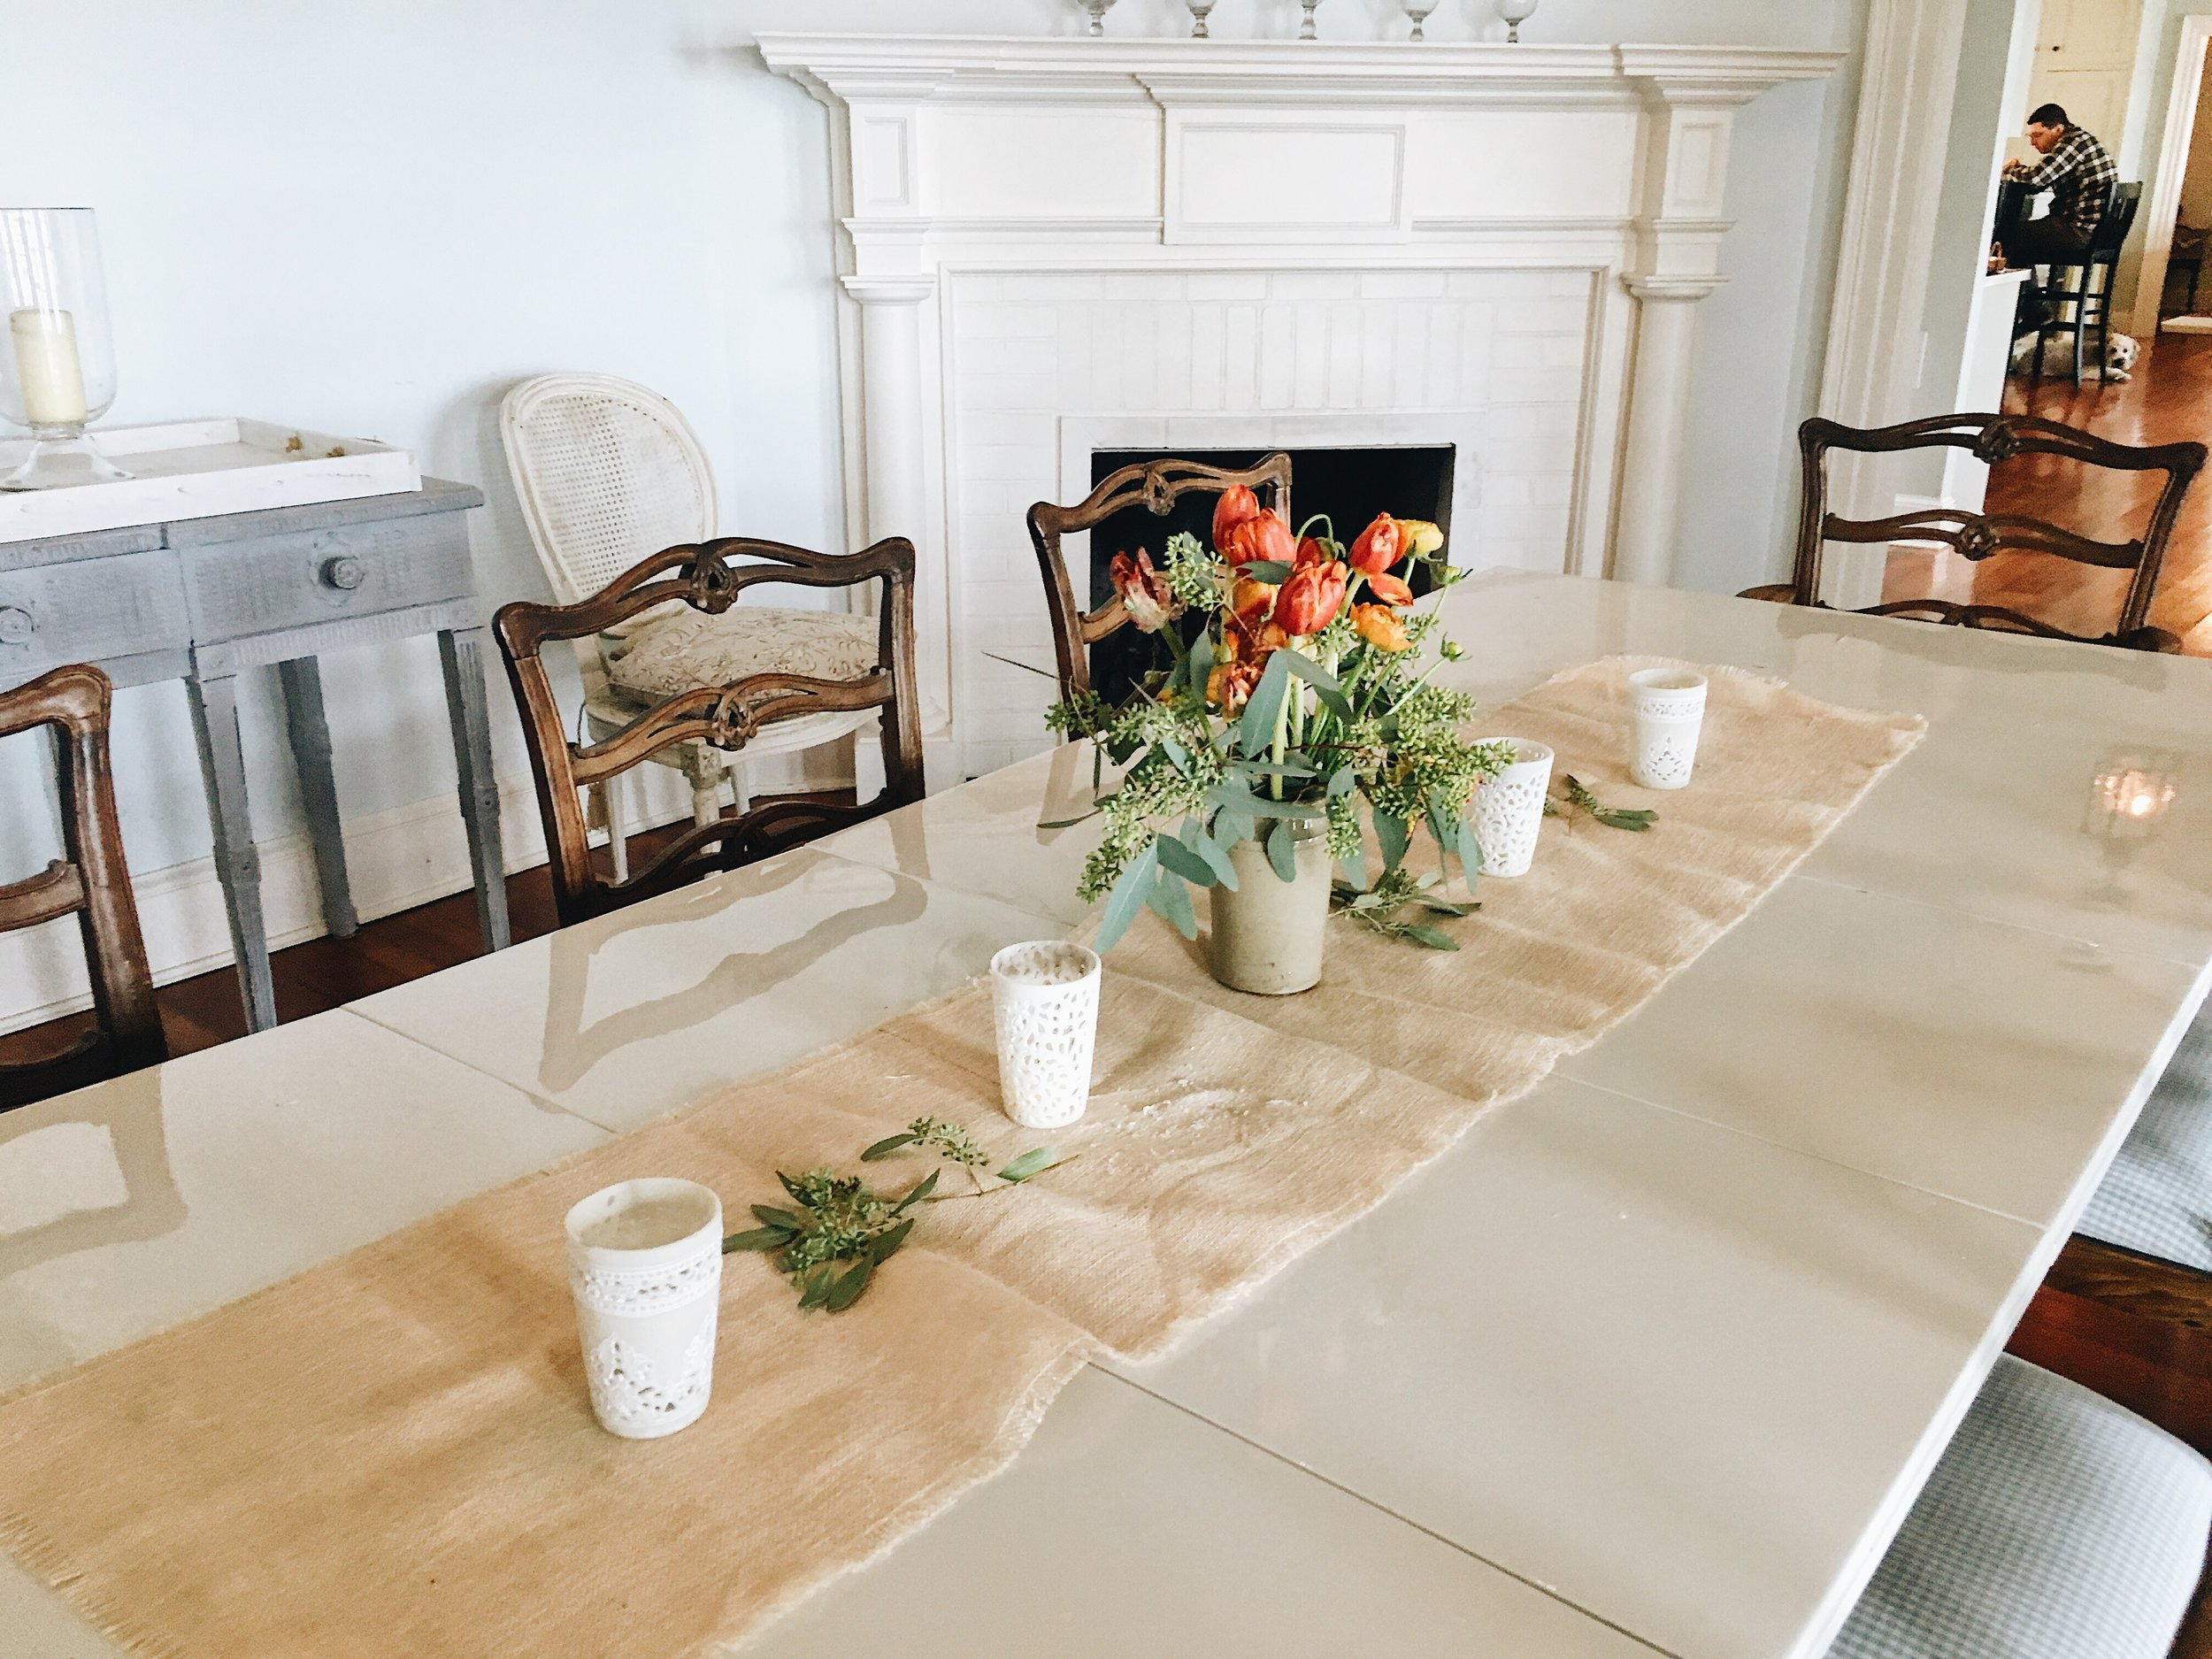 Pretty orange flowers and green leaves with a rustic table runner for entertaining.